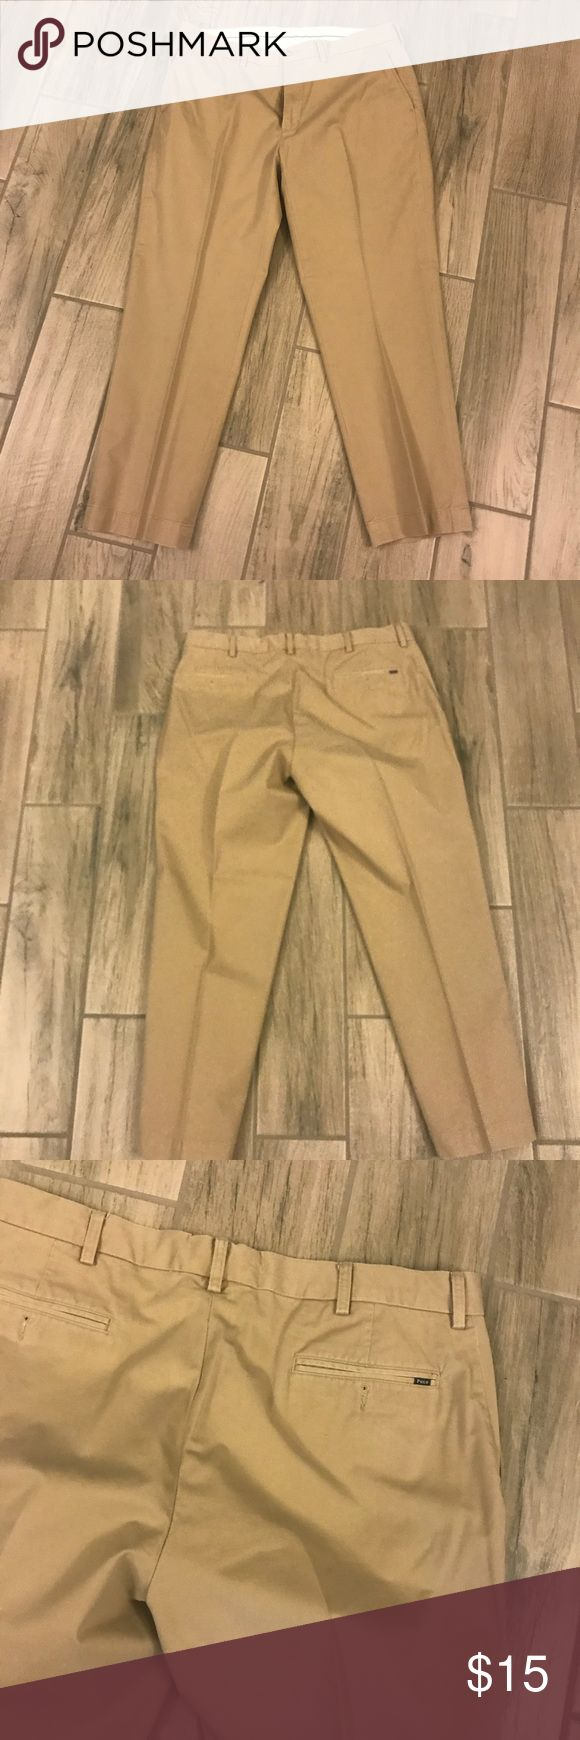 Polo Ralph Lauren men's pants size 38X30 Polo Ralph Lauren men's pants size 38X30 very good clean condition authentic non smoker no stains Polo by Ralph Lauren Pants Chinos & Khakis